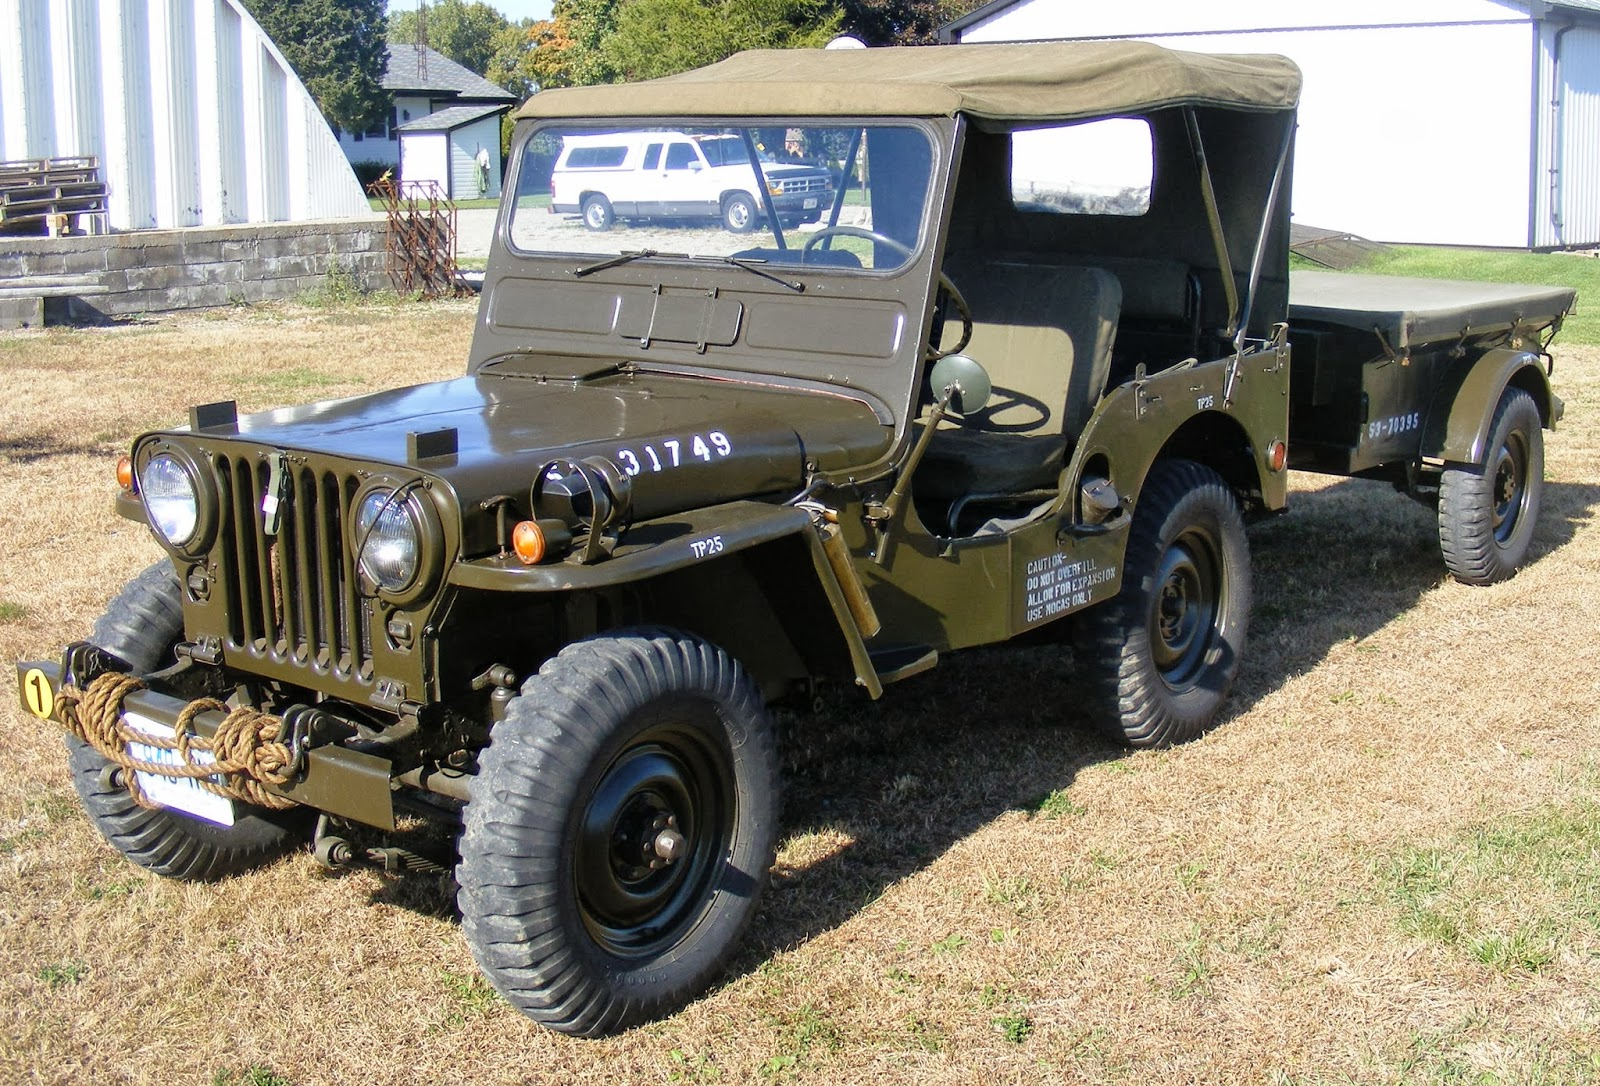 classic wheels and vintage wings sold excellent 1952 willys m38 military jeep. Black Bedroom Furniture Sets. Home Design Ideas